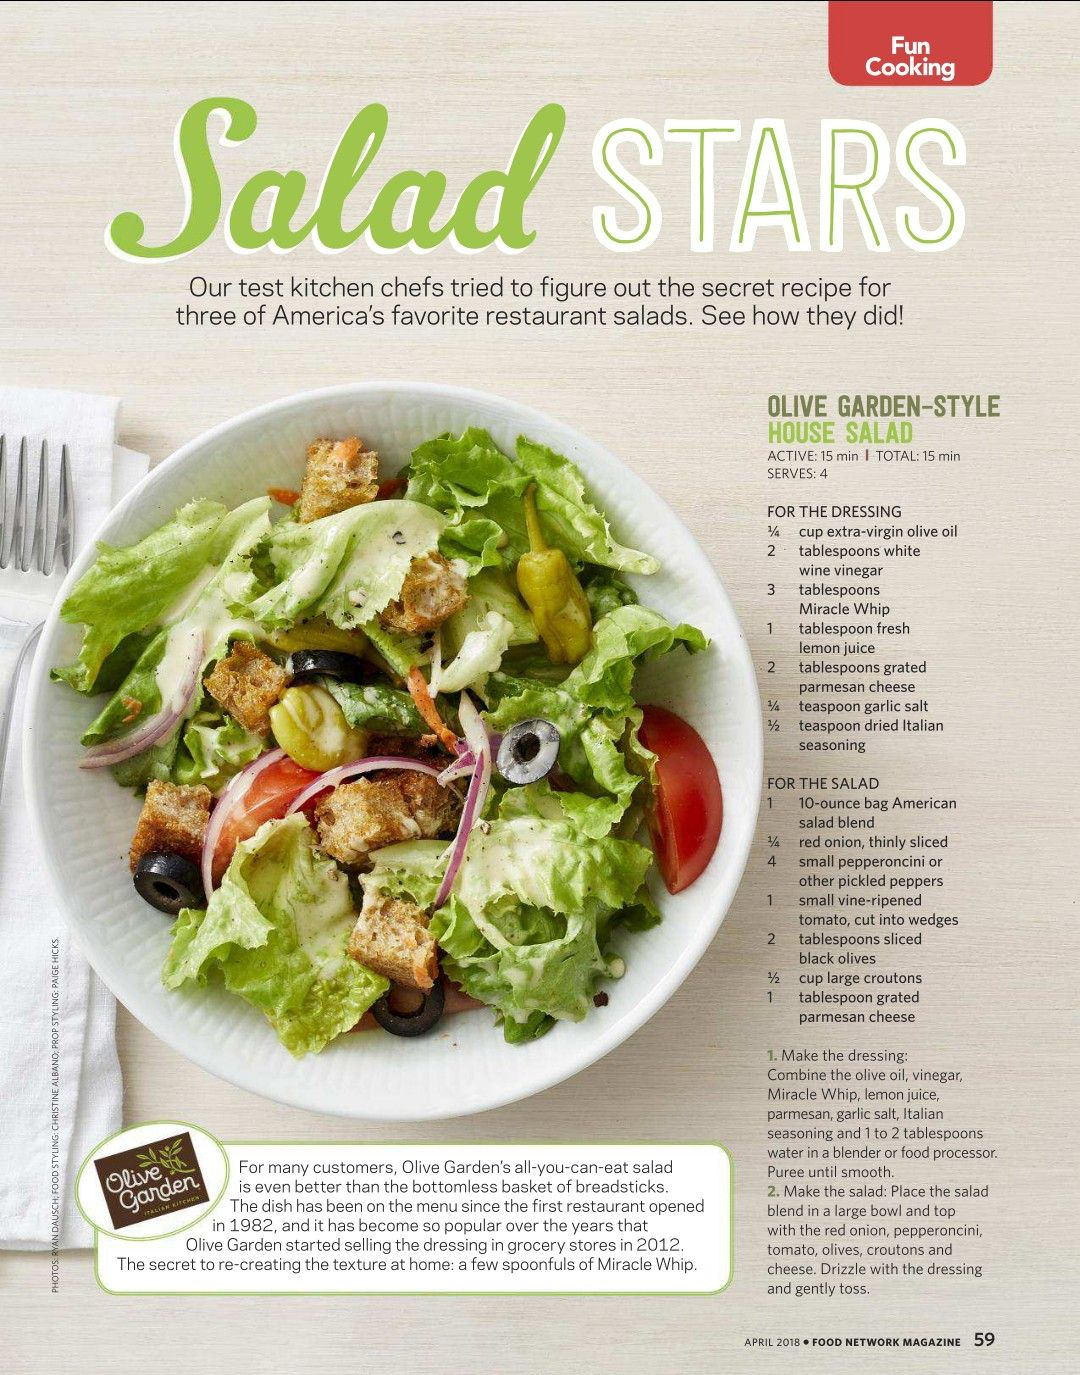 Olive Garden Style House Salad Salad Recipes Healthy Easy Salad Recipes For Dinner Super Healthy Recipes